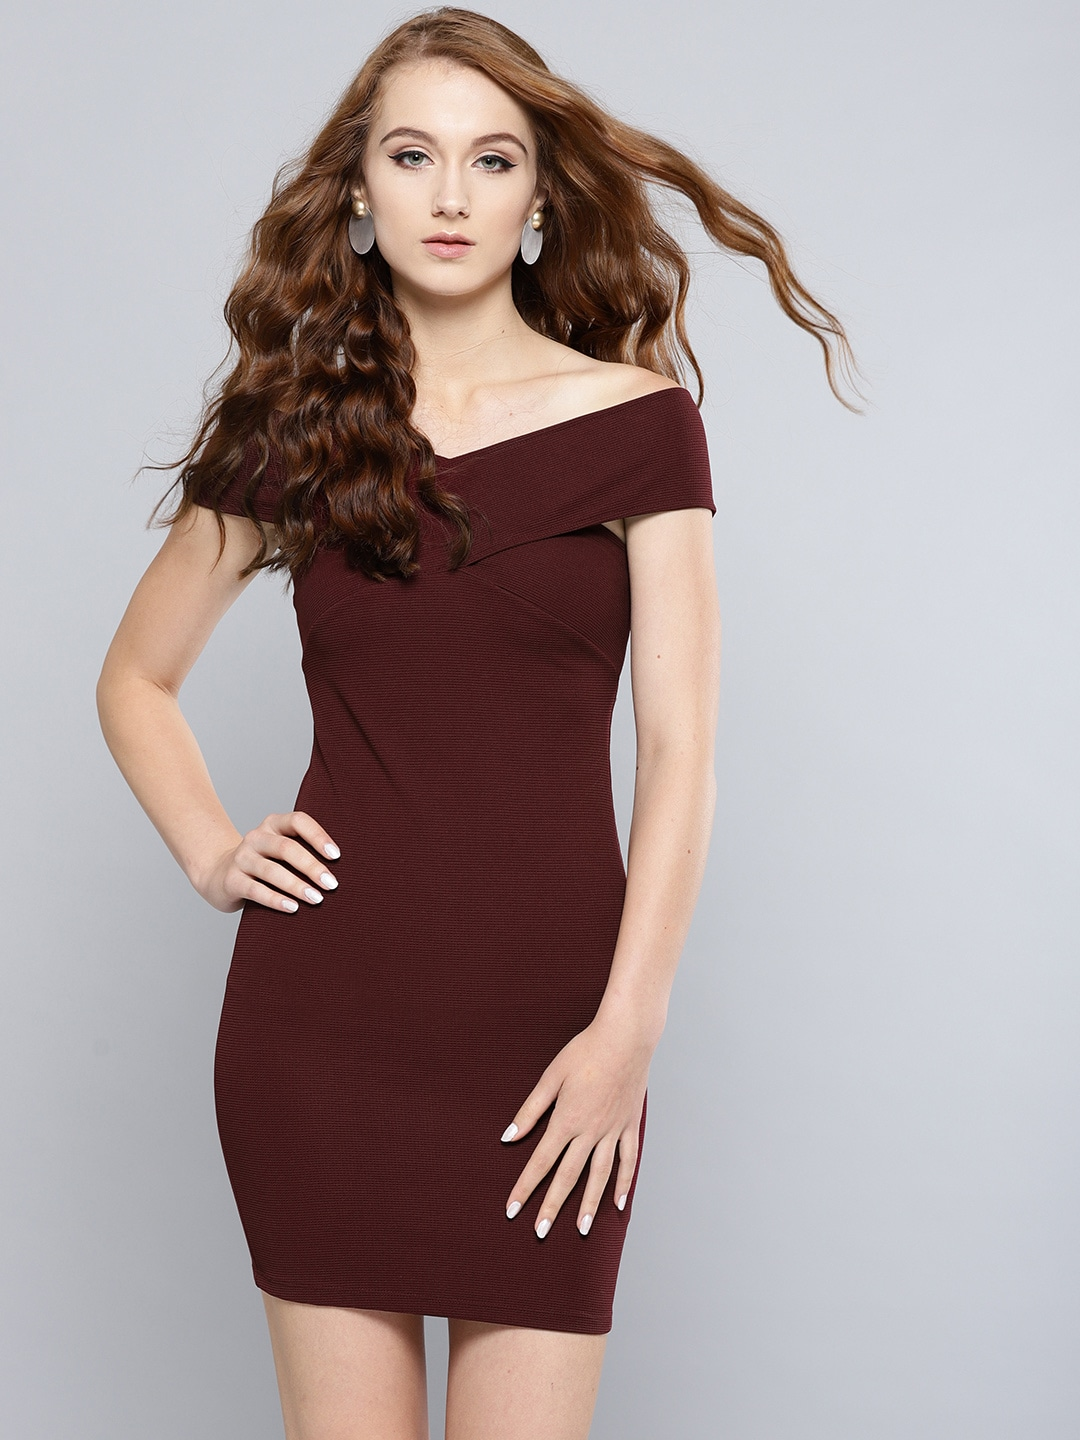 Bodycon Dress - Buy Stylish Bodycon Dresses Online  307e5f1e1